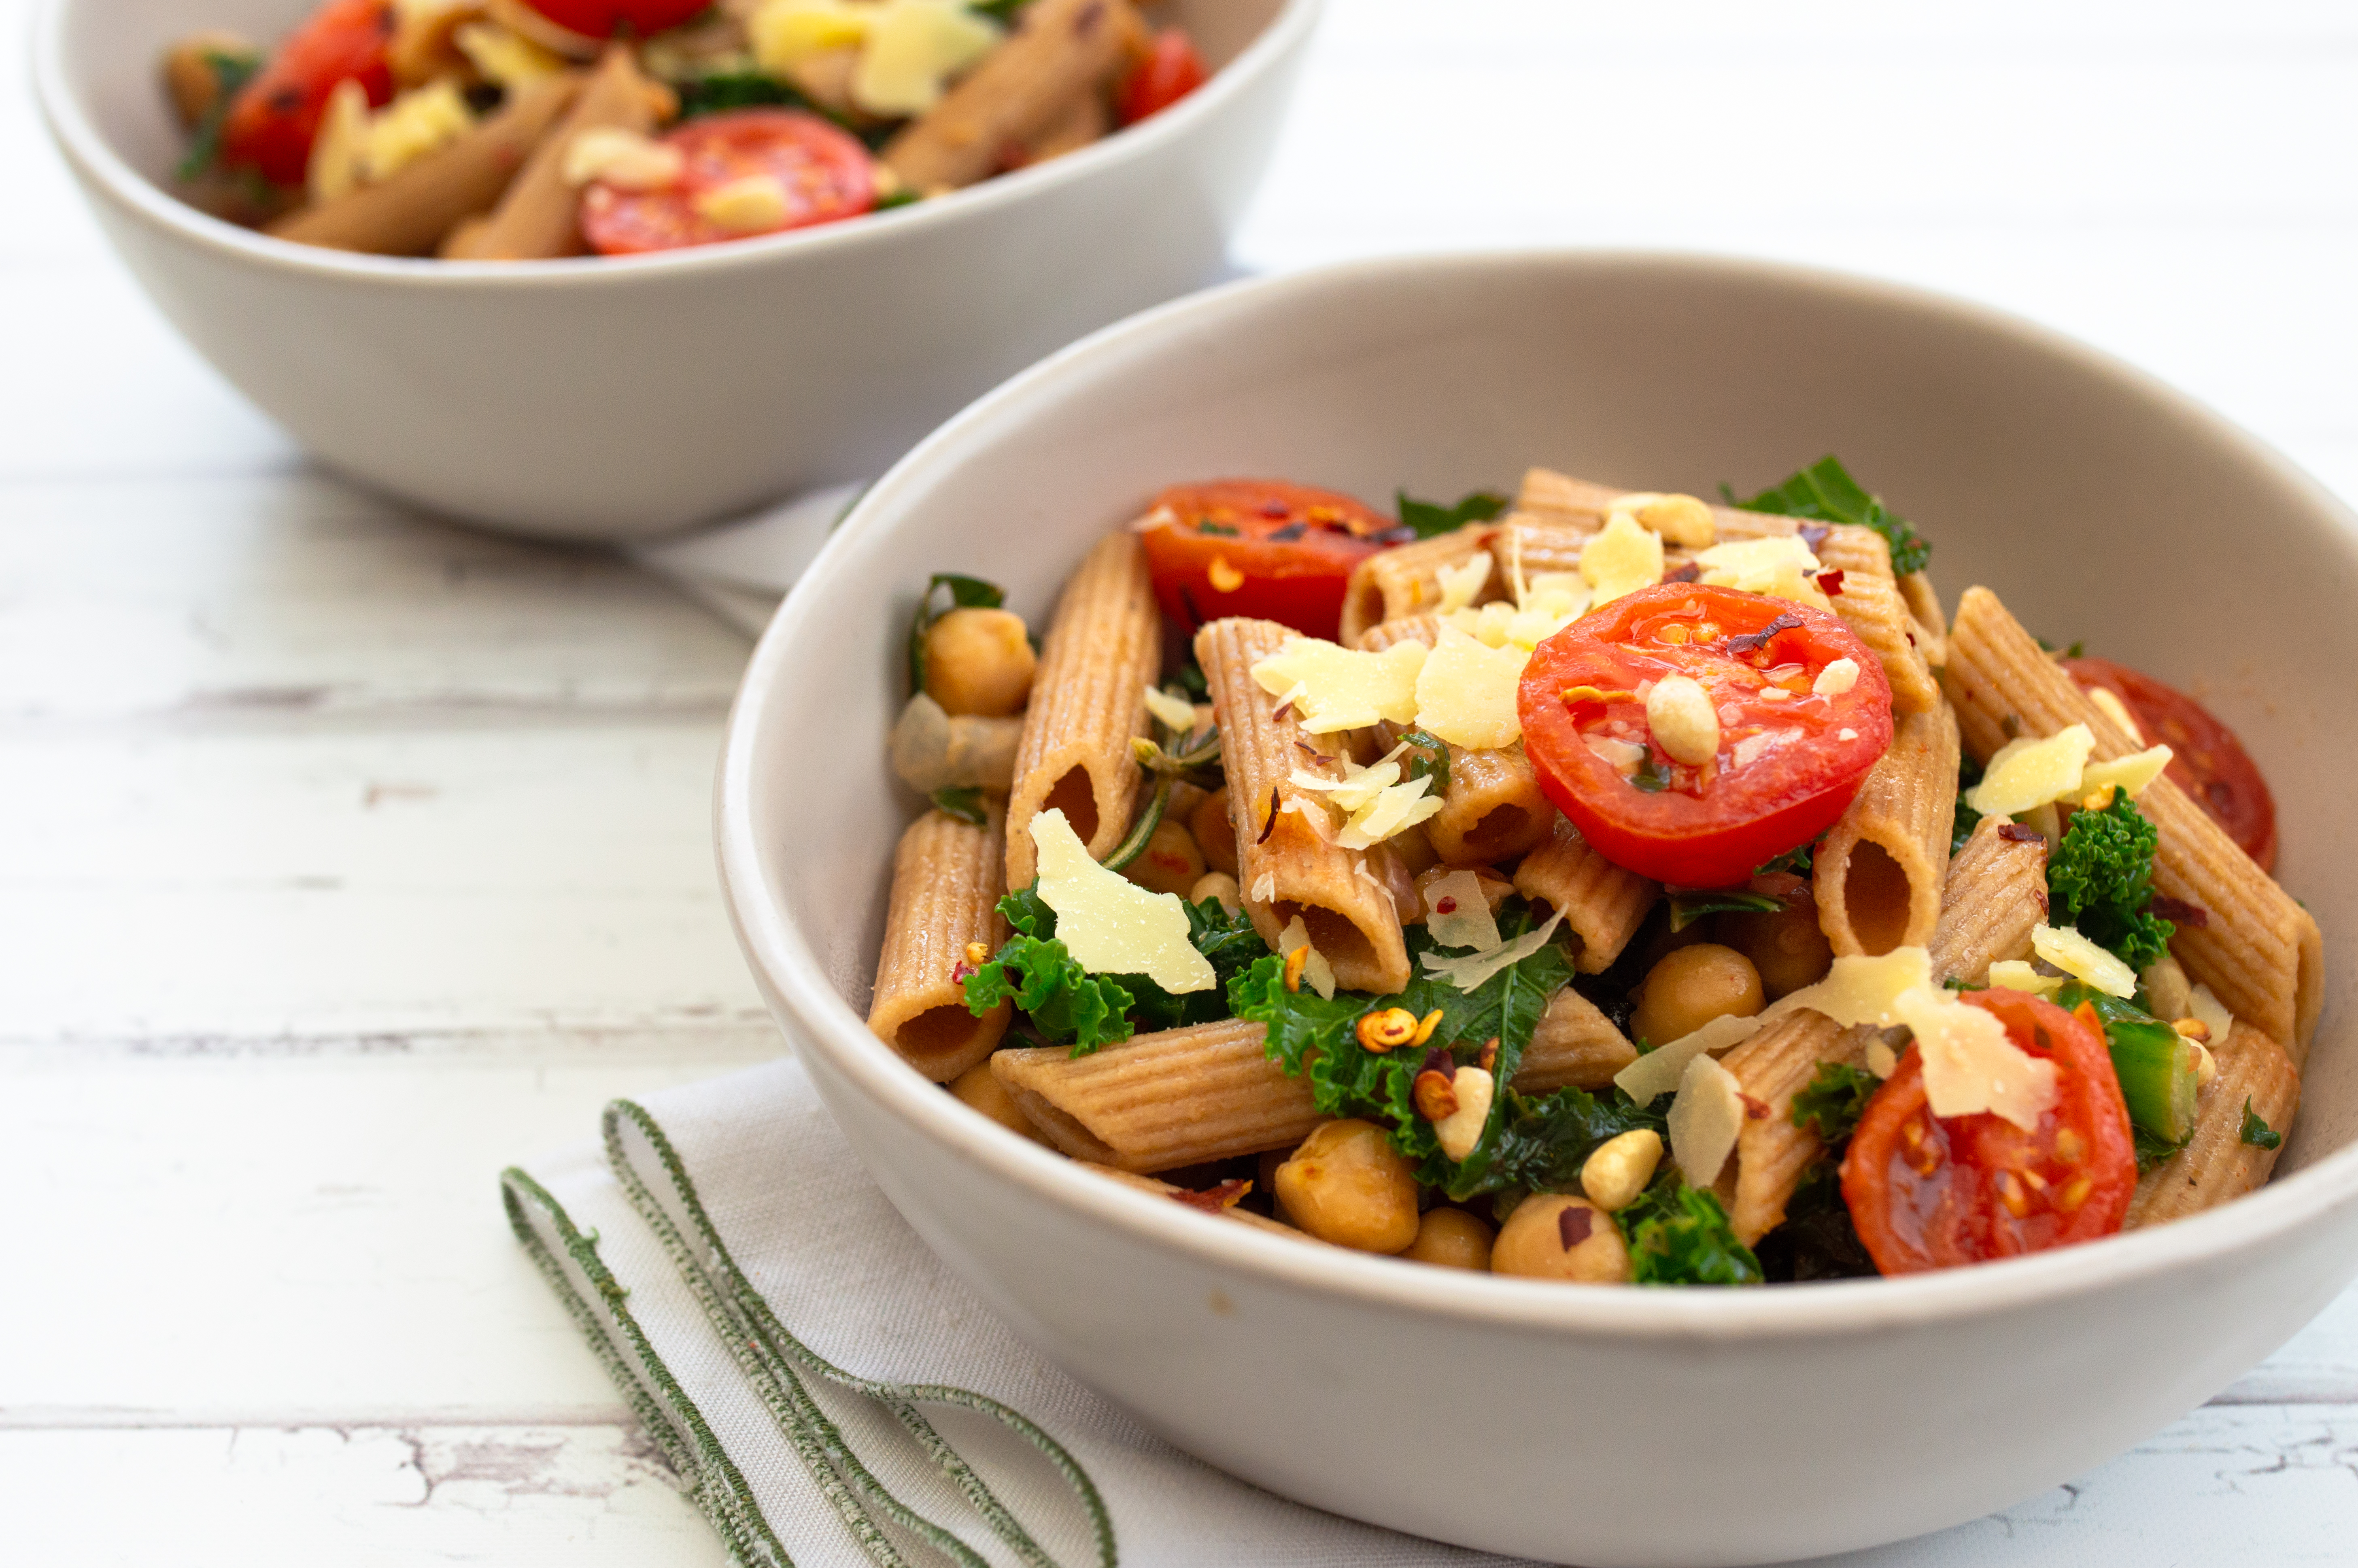 Vegetarian pasta with chickpeas & kale